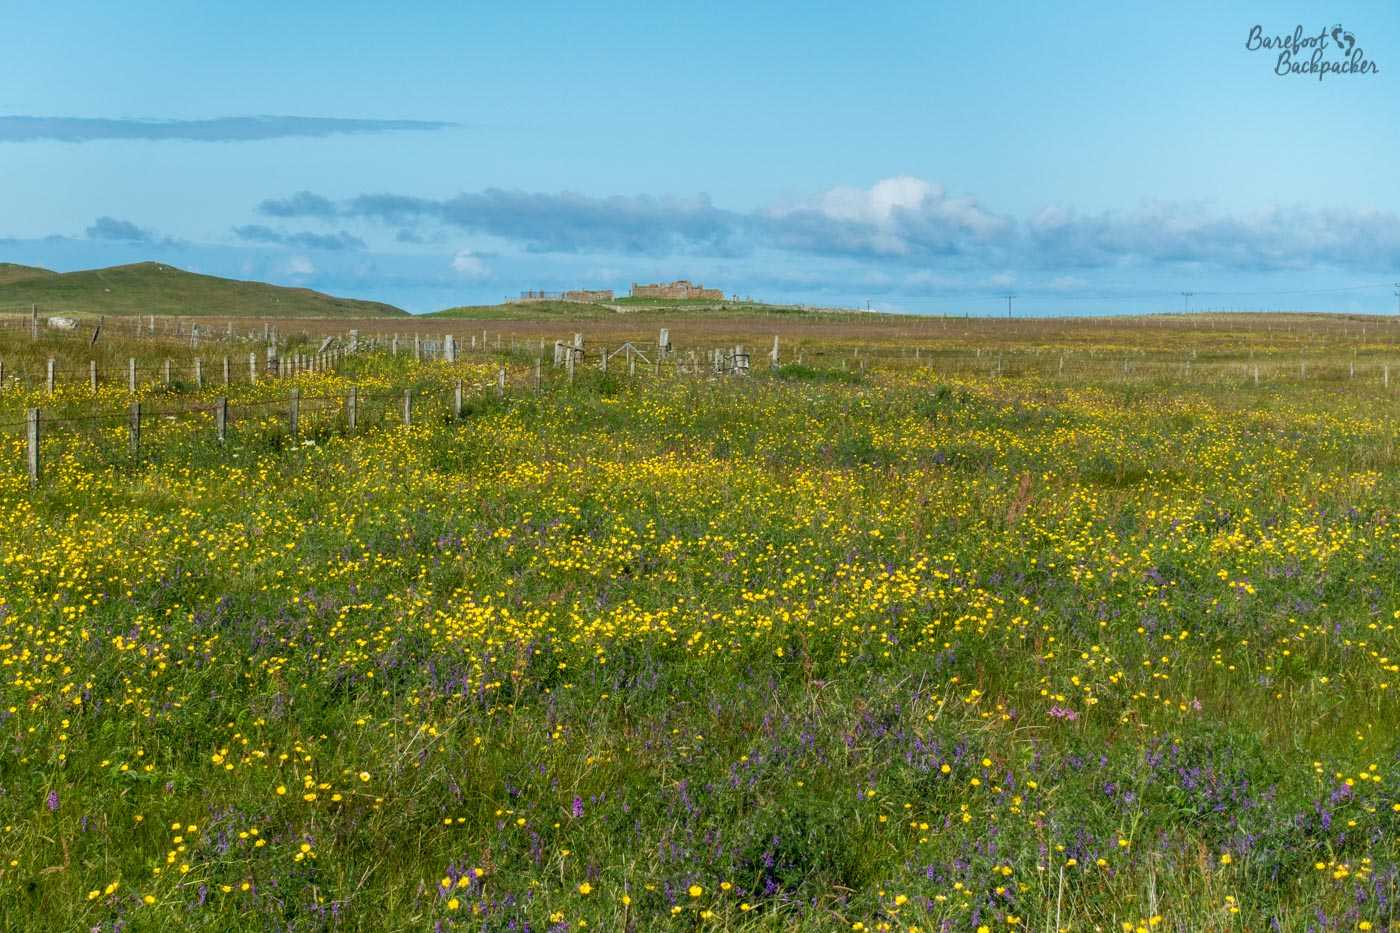 Looking out over the machair, fields of wildflowers, towards a ruined church on the west side of South Uist